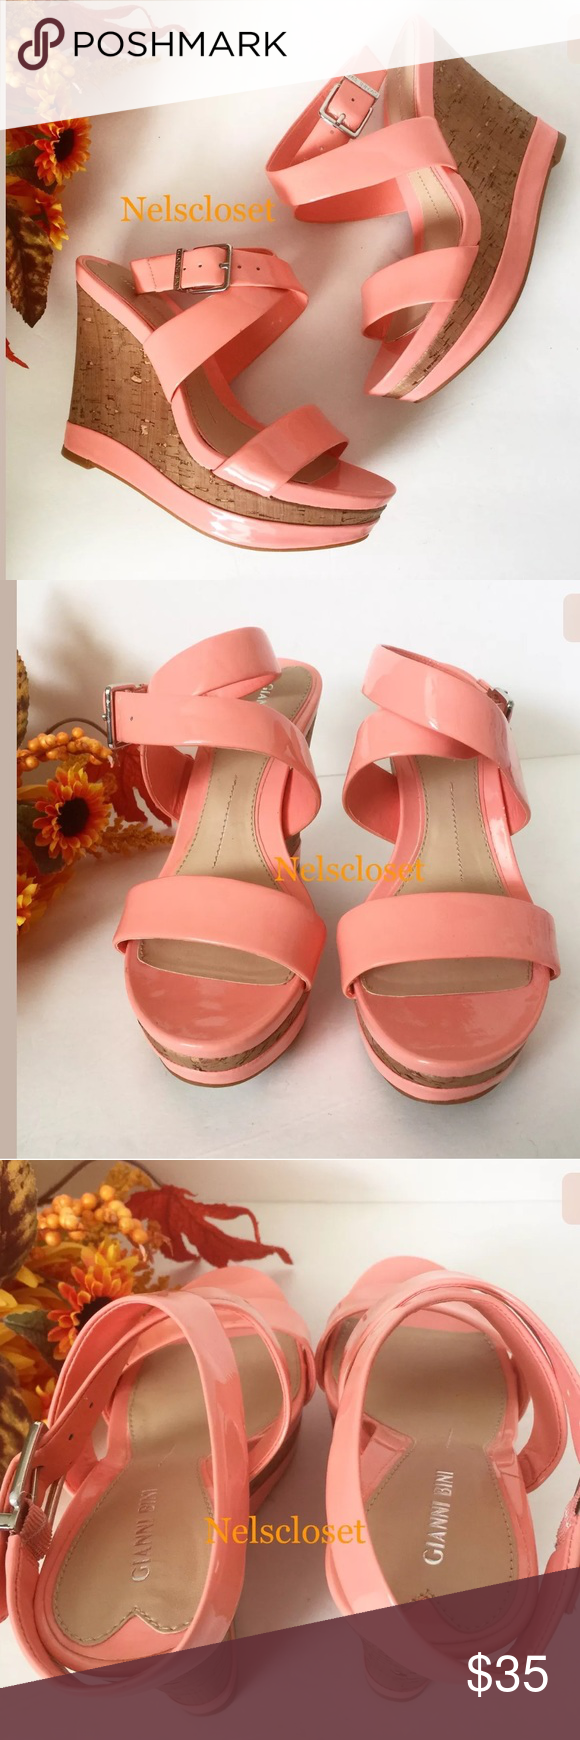 """NEW GIANNI BINI CORAL PATENT LEATHER WEDGE SHOES BRAND NEW GIANNI BINI CORAL PATENT LEATHER WEDGE SANDALS SHOES Size: 8M Heels height: 5"""" The shoes are still BRAND NEW WITHOUT BOX. NEVER BEEN USED Great for a gift or just to spoil yourself. Gianni Bini Shoes Wedges"""